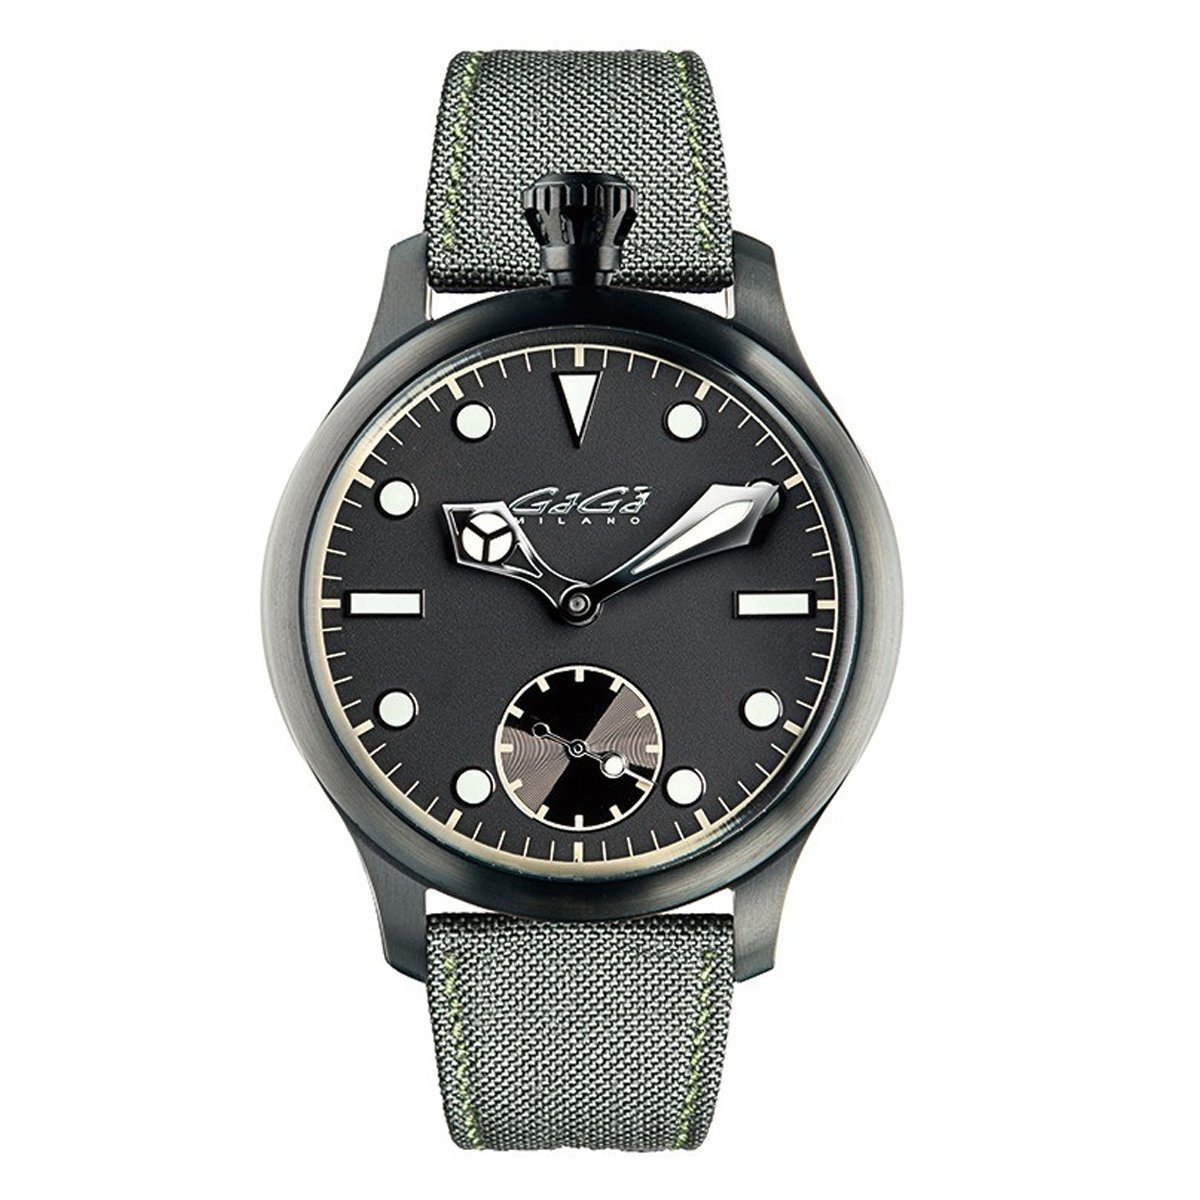 GaGà Milano Classic Steel Black PVD - Watches & Crystals